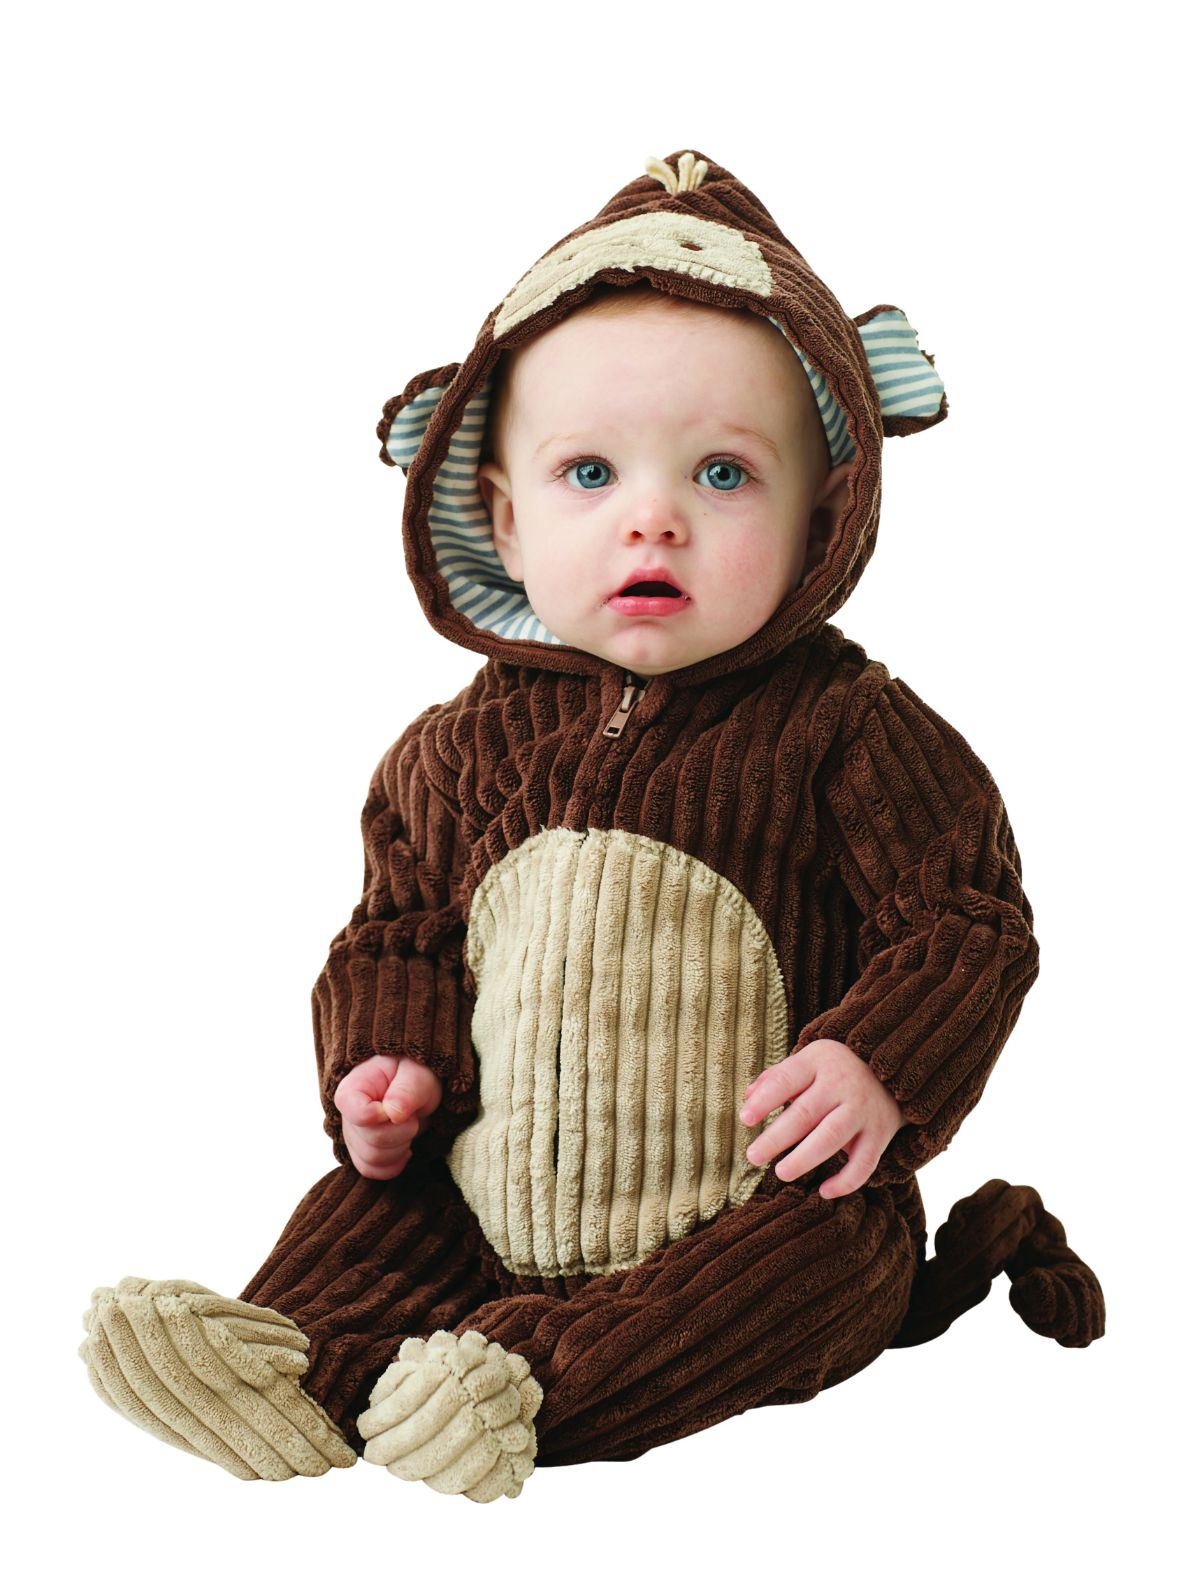 sock monkey costumes (for men, women, kids) | parties costume